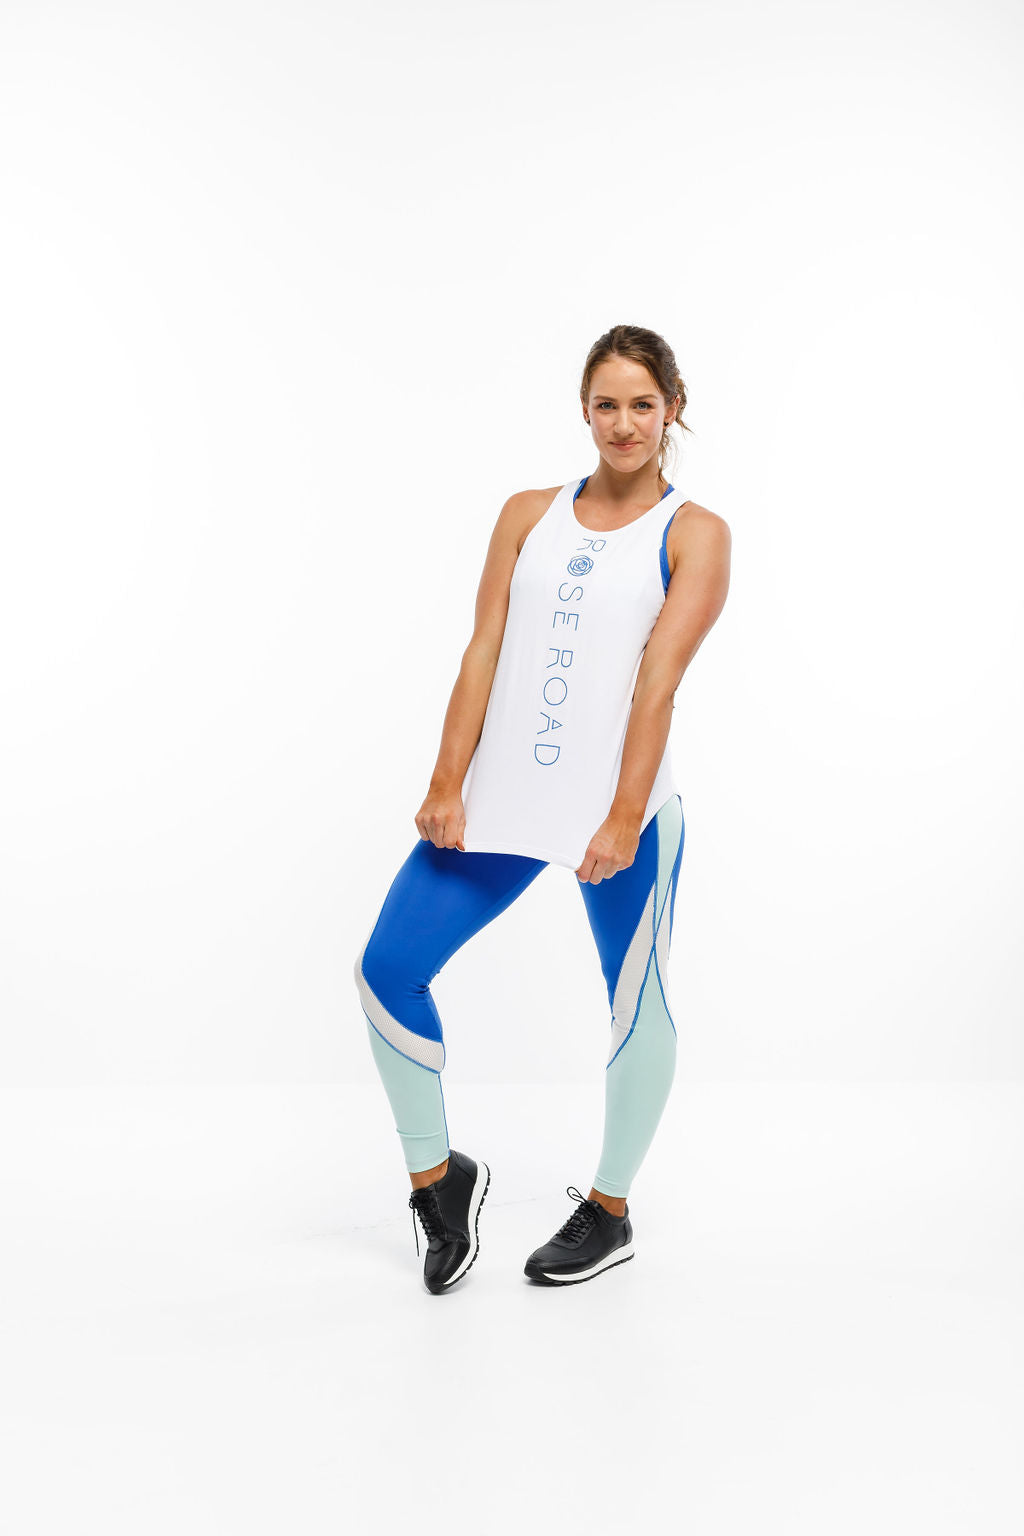 RACERBACK SINGLET - White with Blue Vertical Logo